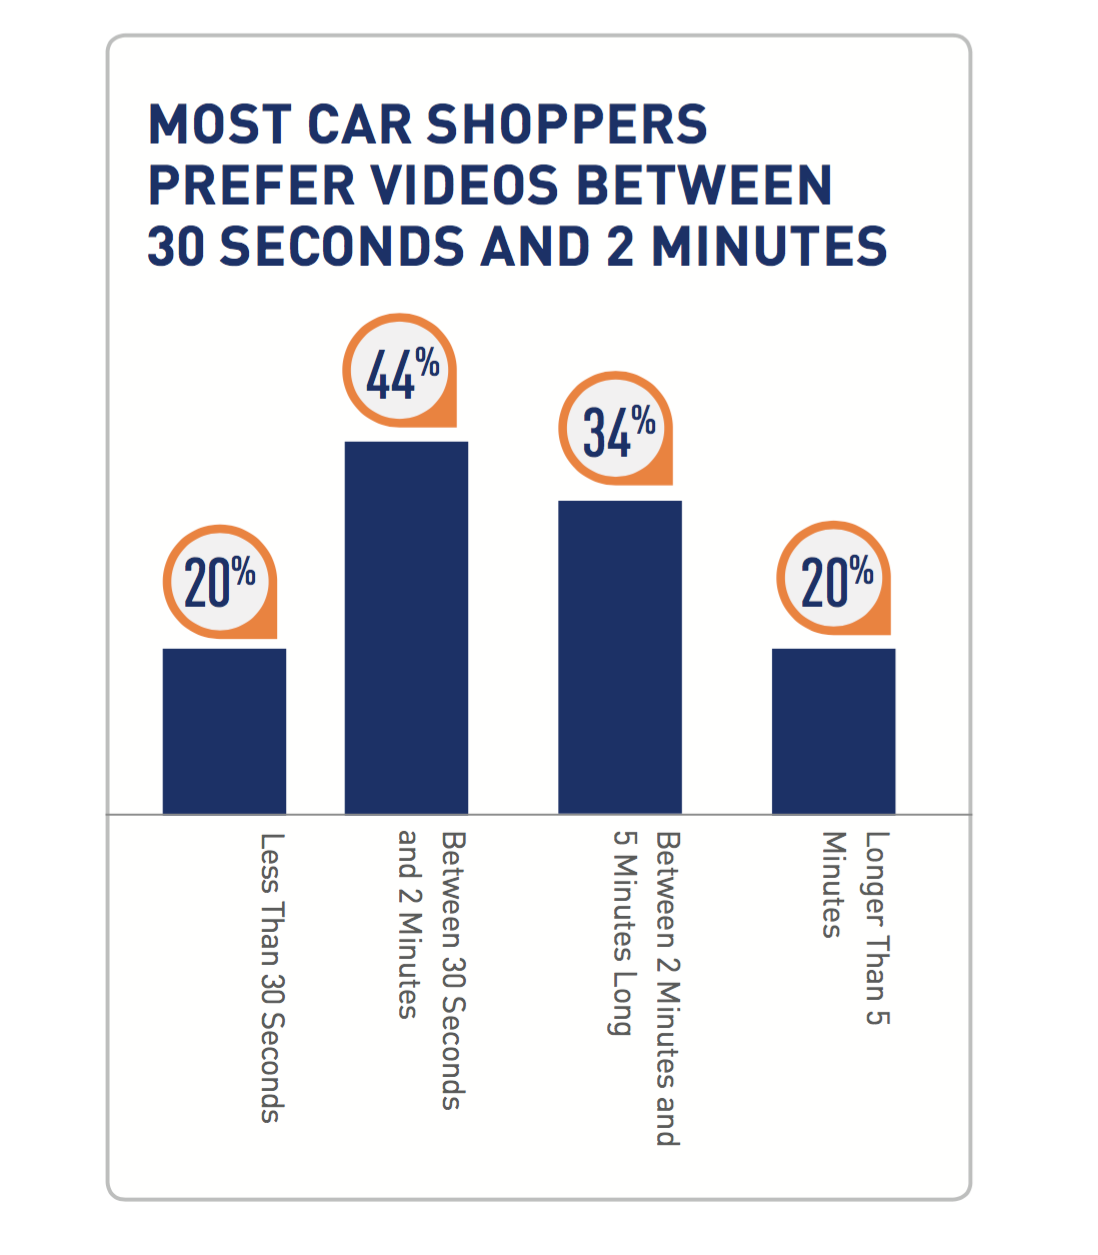 Source: 2015 Cox Automotive Consumer Video Research Study